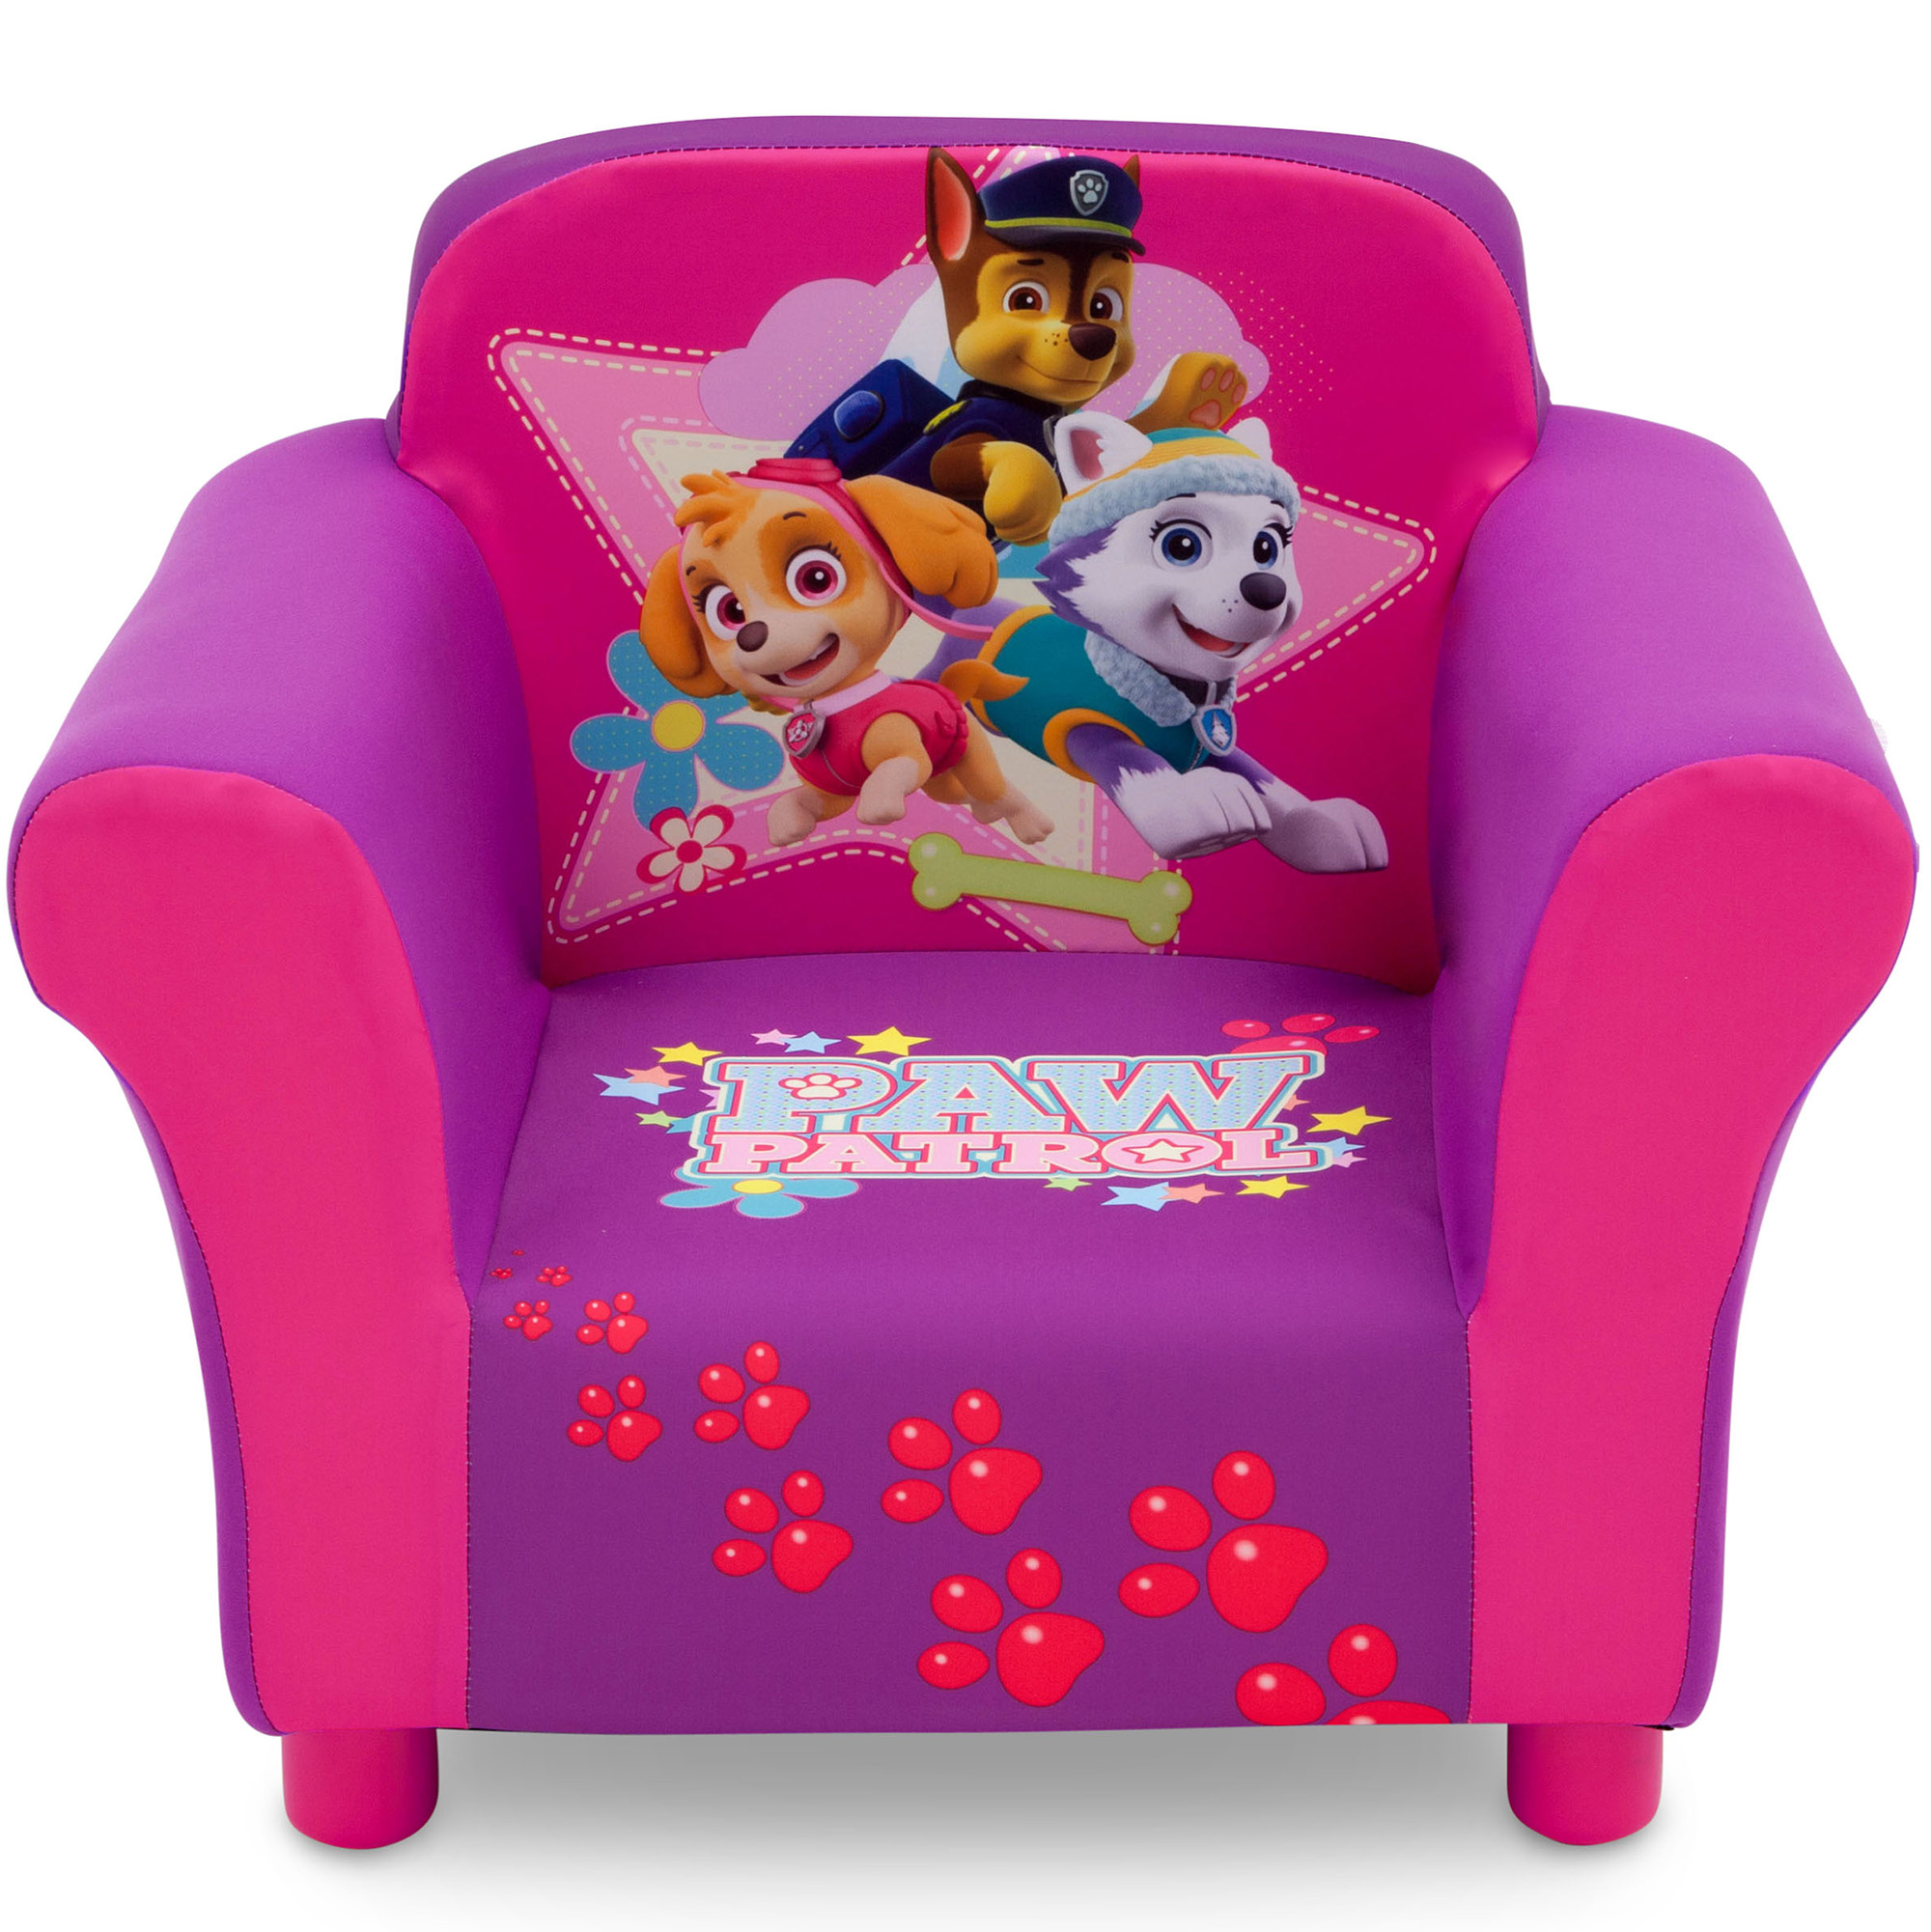 childrens upholstered chairs back massage chair pad nick jr paw patrol skye and everest kids by delta children walmart com